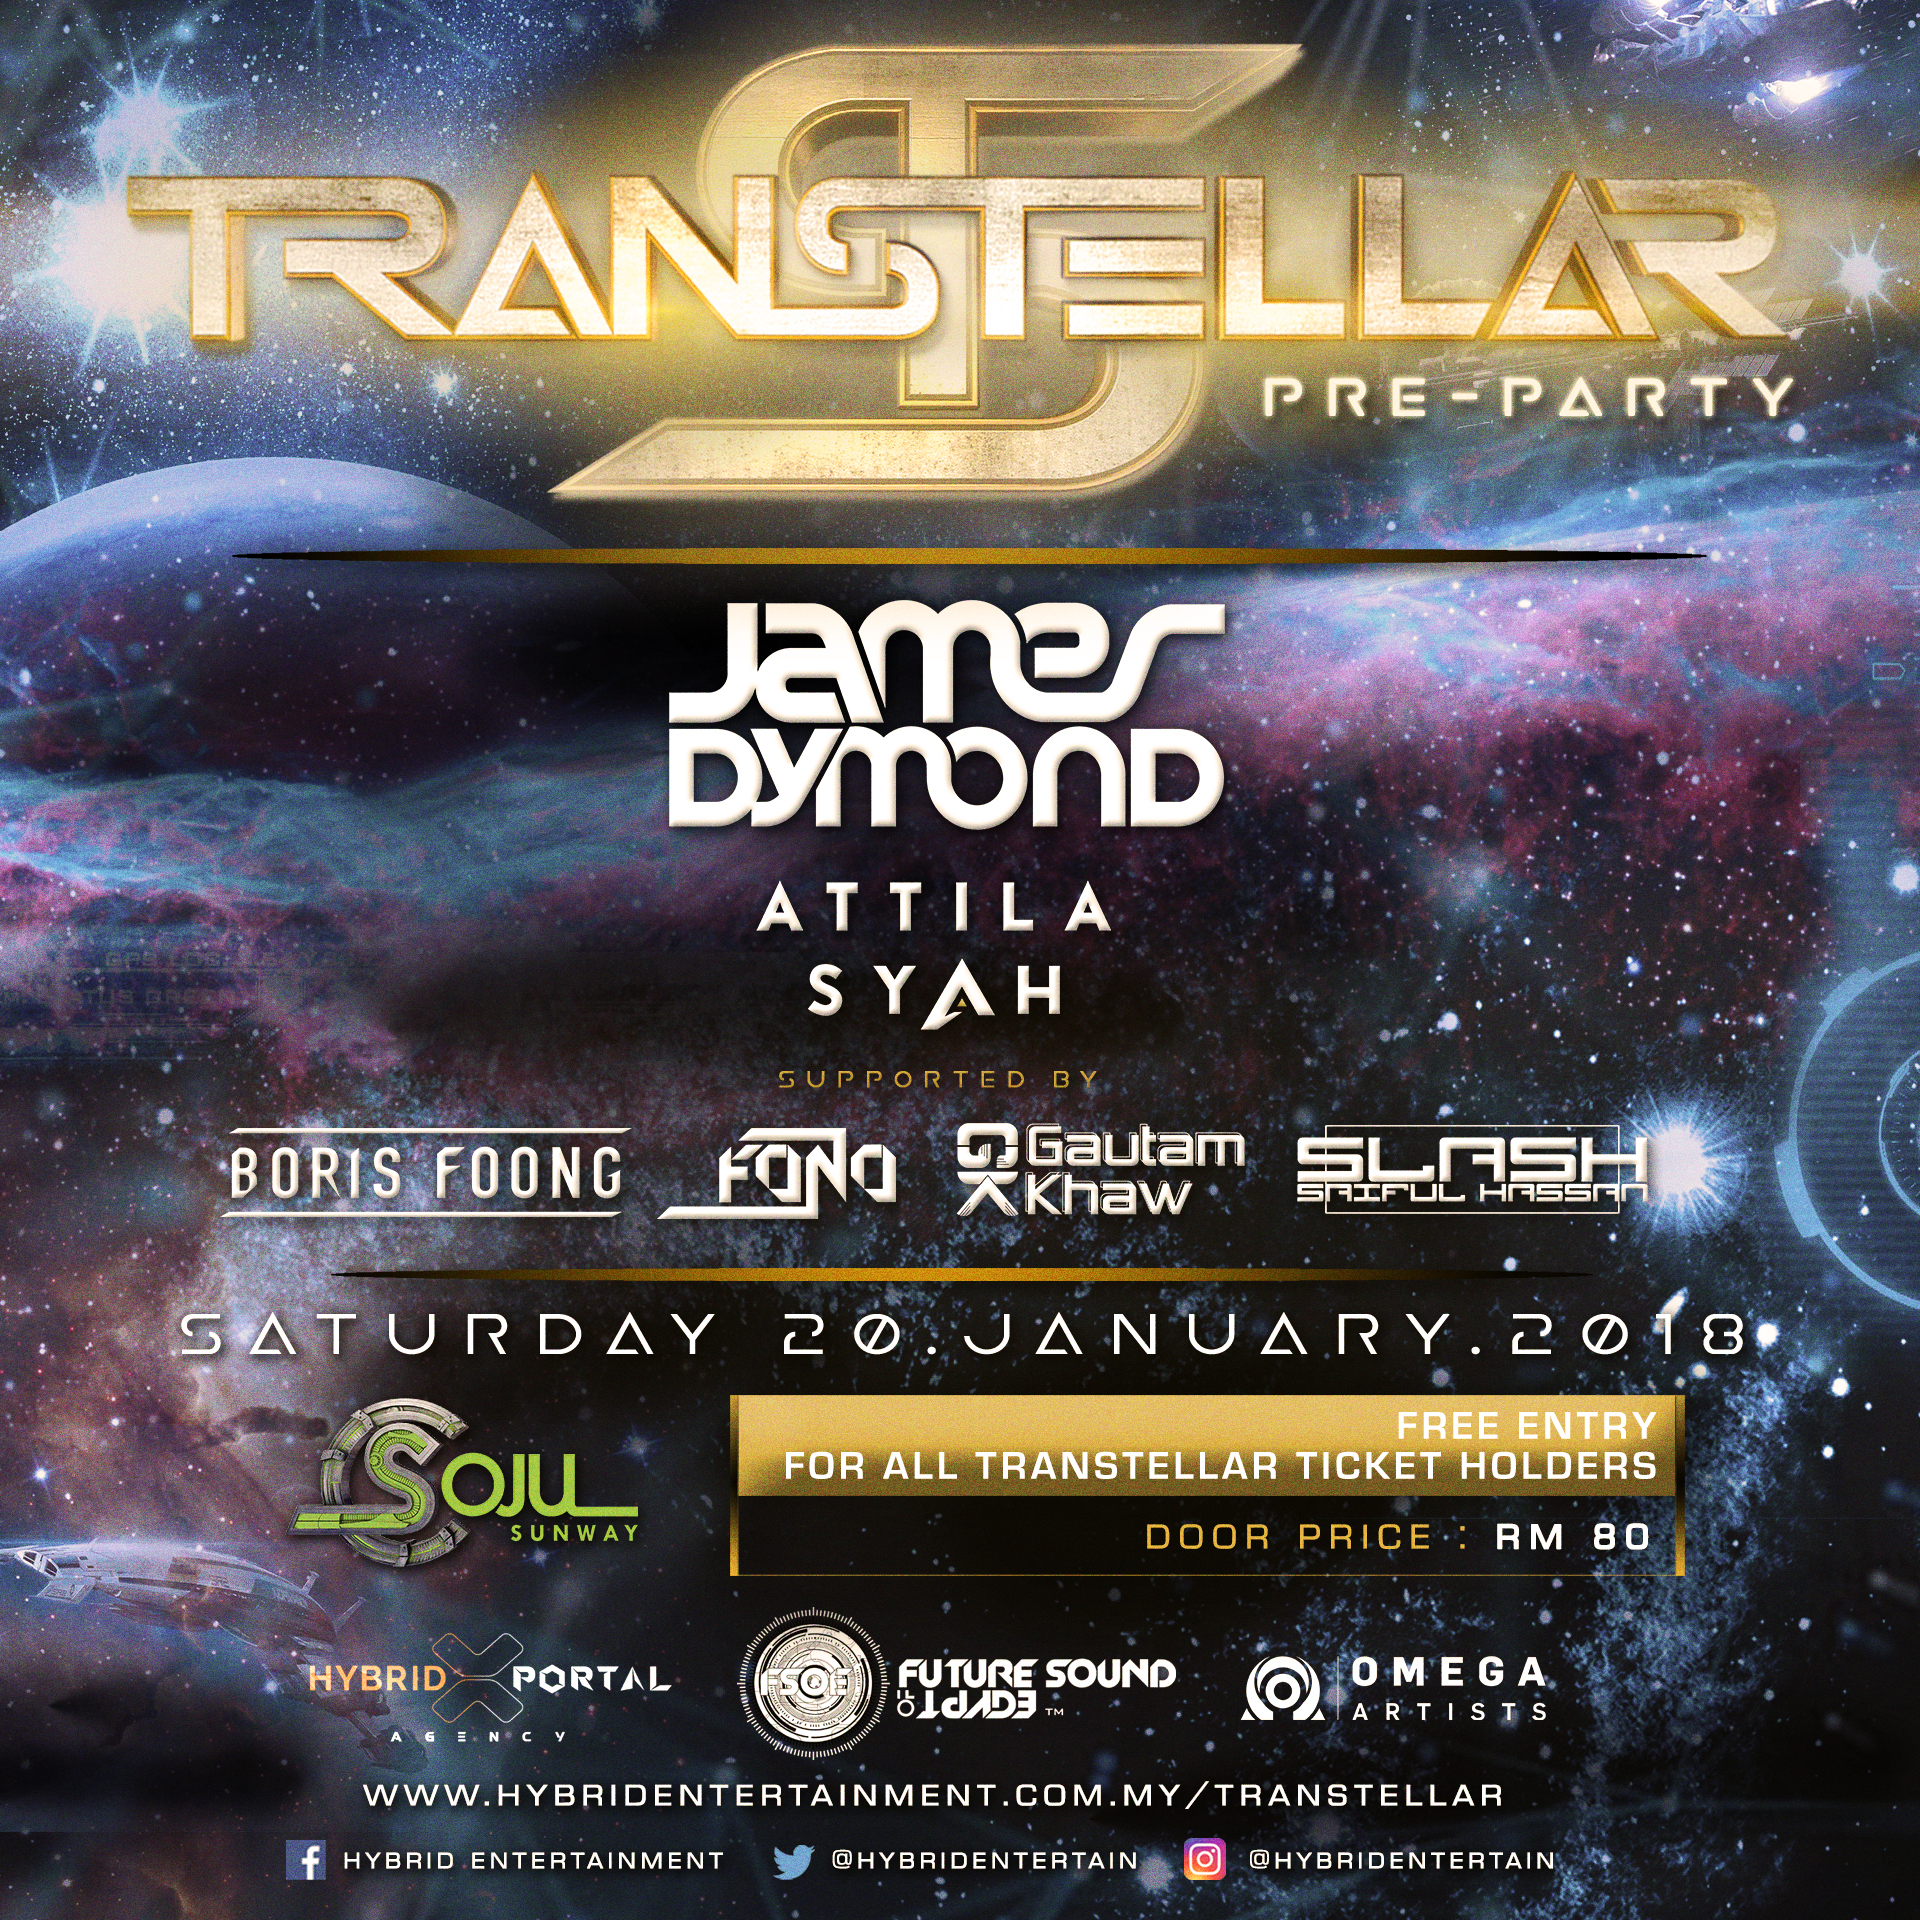 TRANSTELLAR-Pre-Party--squarePoster_v001.jpg